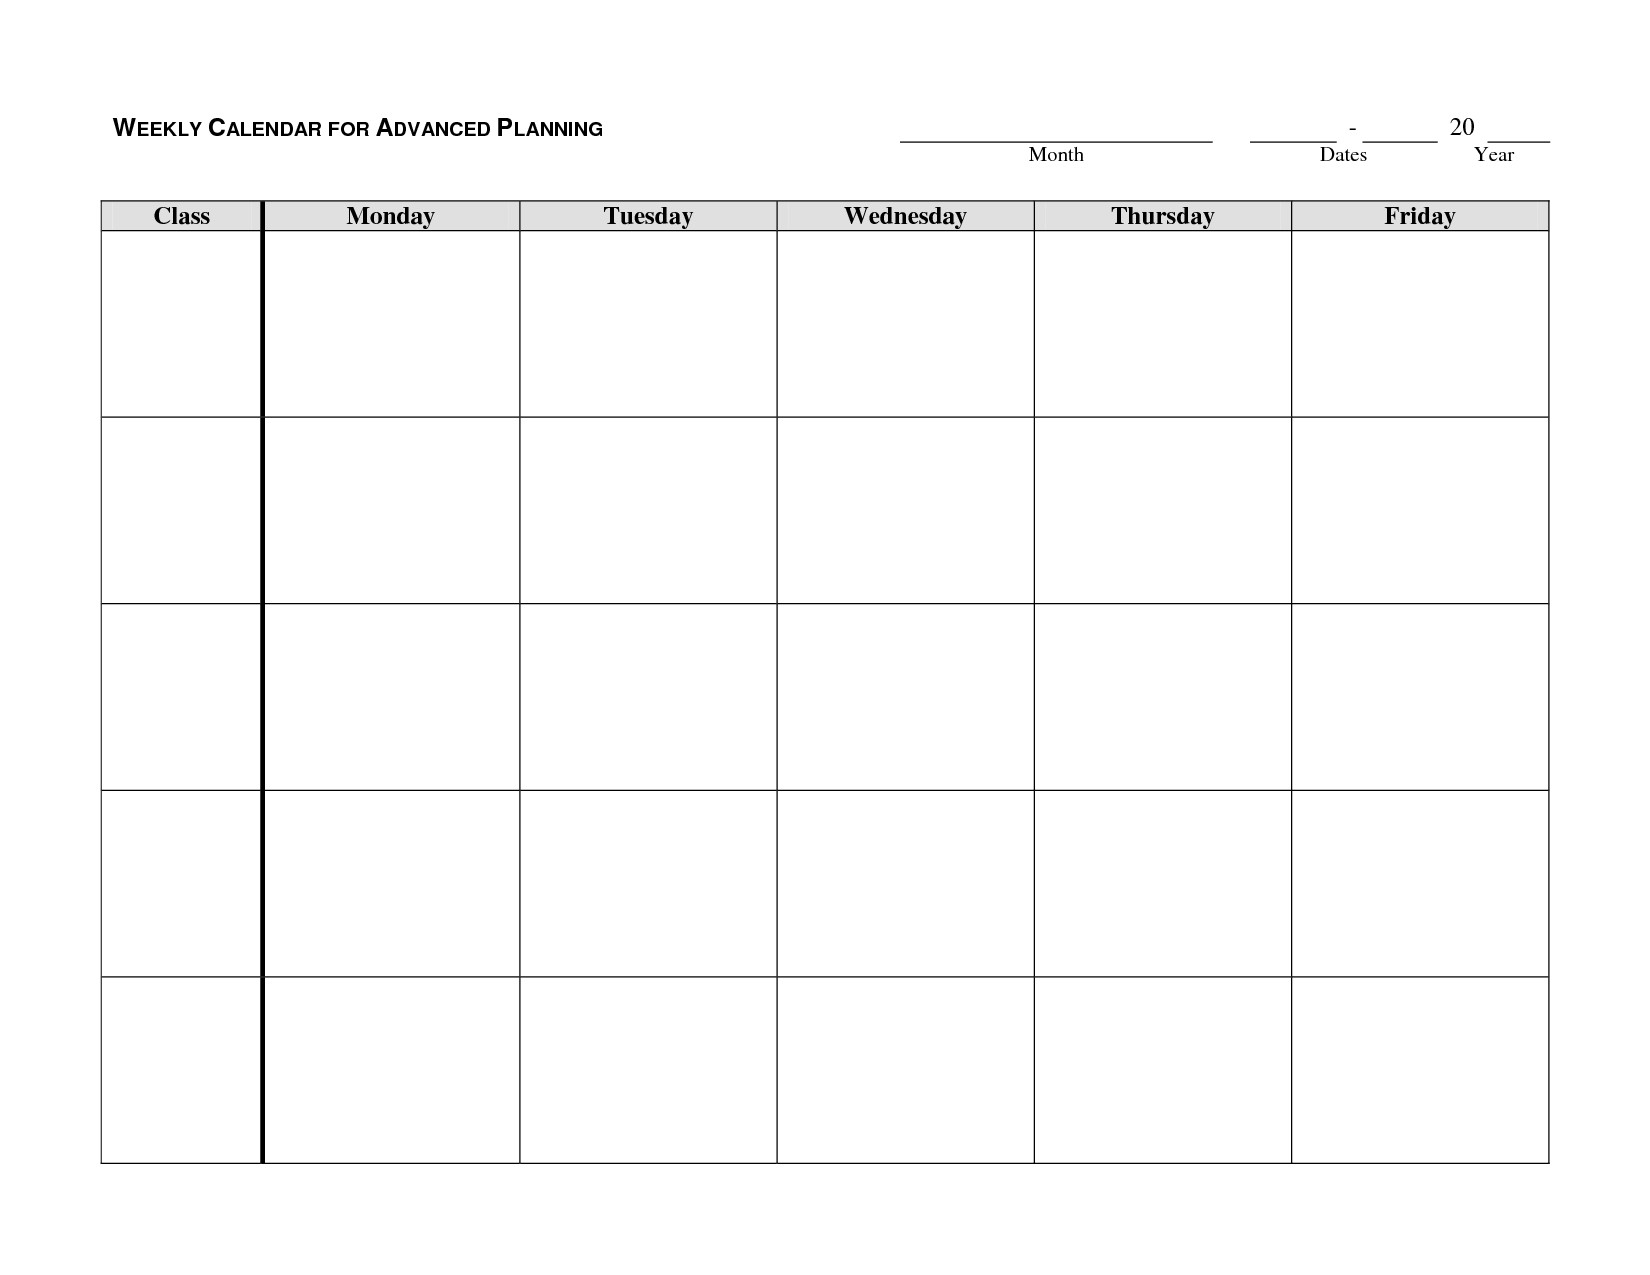 Monday To Friday Schedule Printable  Calendar Inspiration with regard to Monday Through Friday Calendar